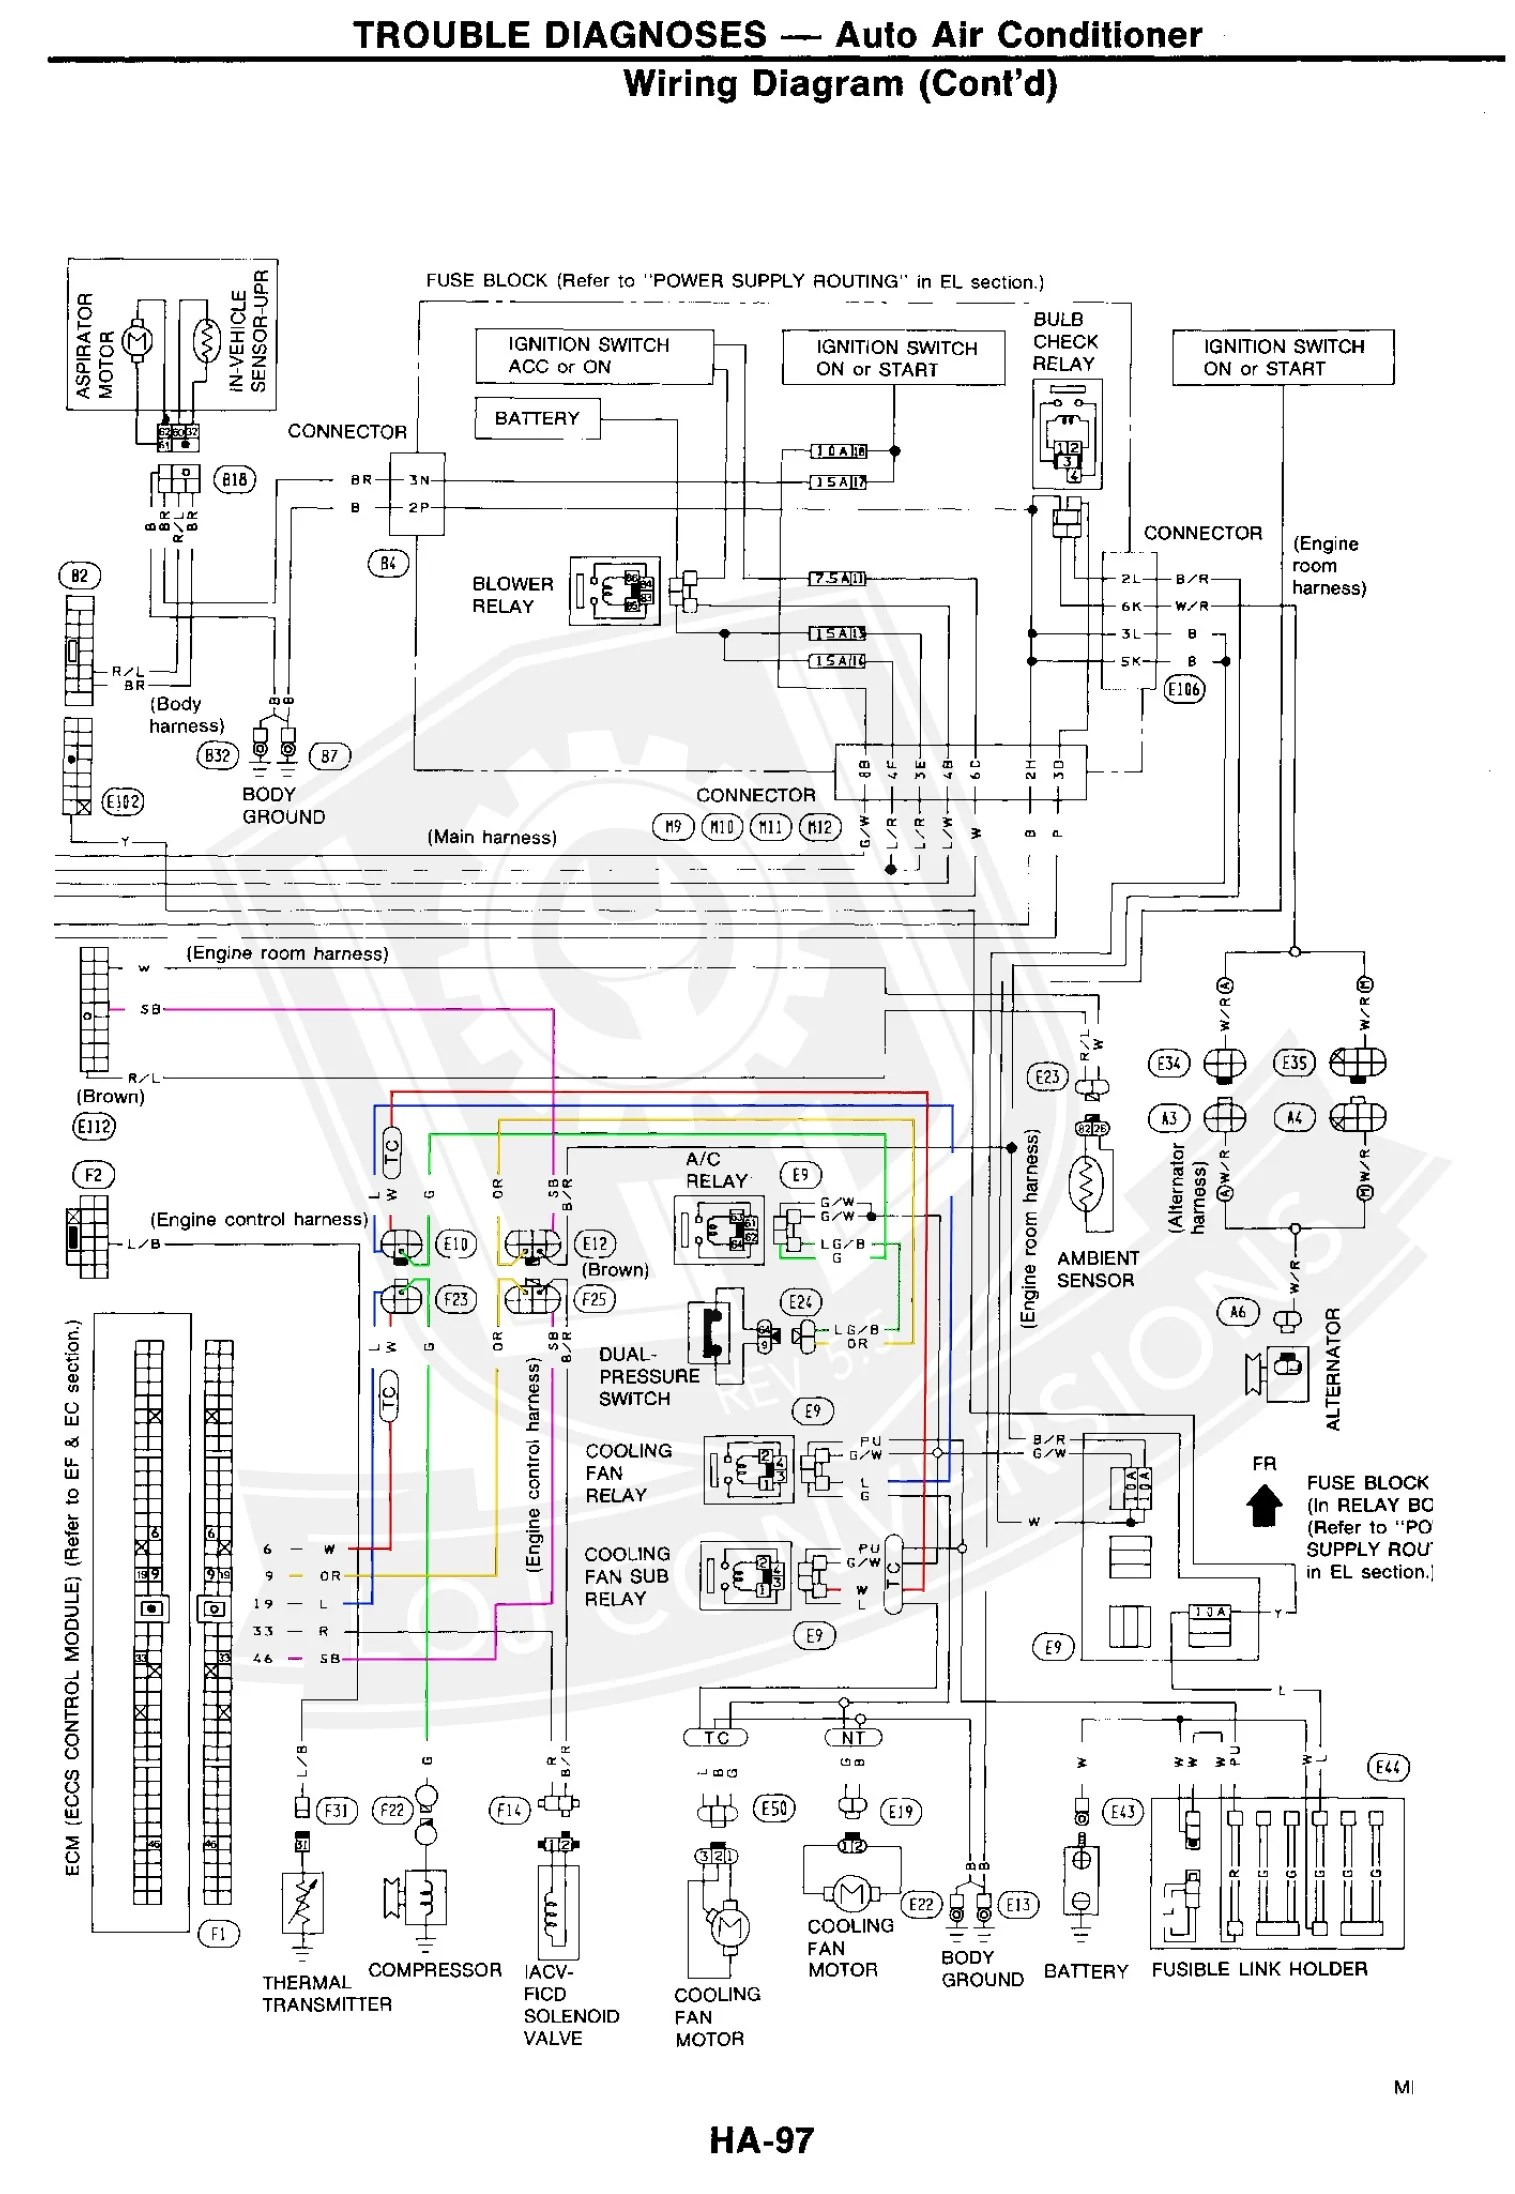 small resolution of 1980 camaro wiring diagram wiring diagram centre 1980 camaro wiring diagram